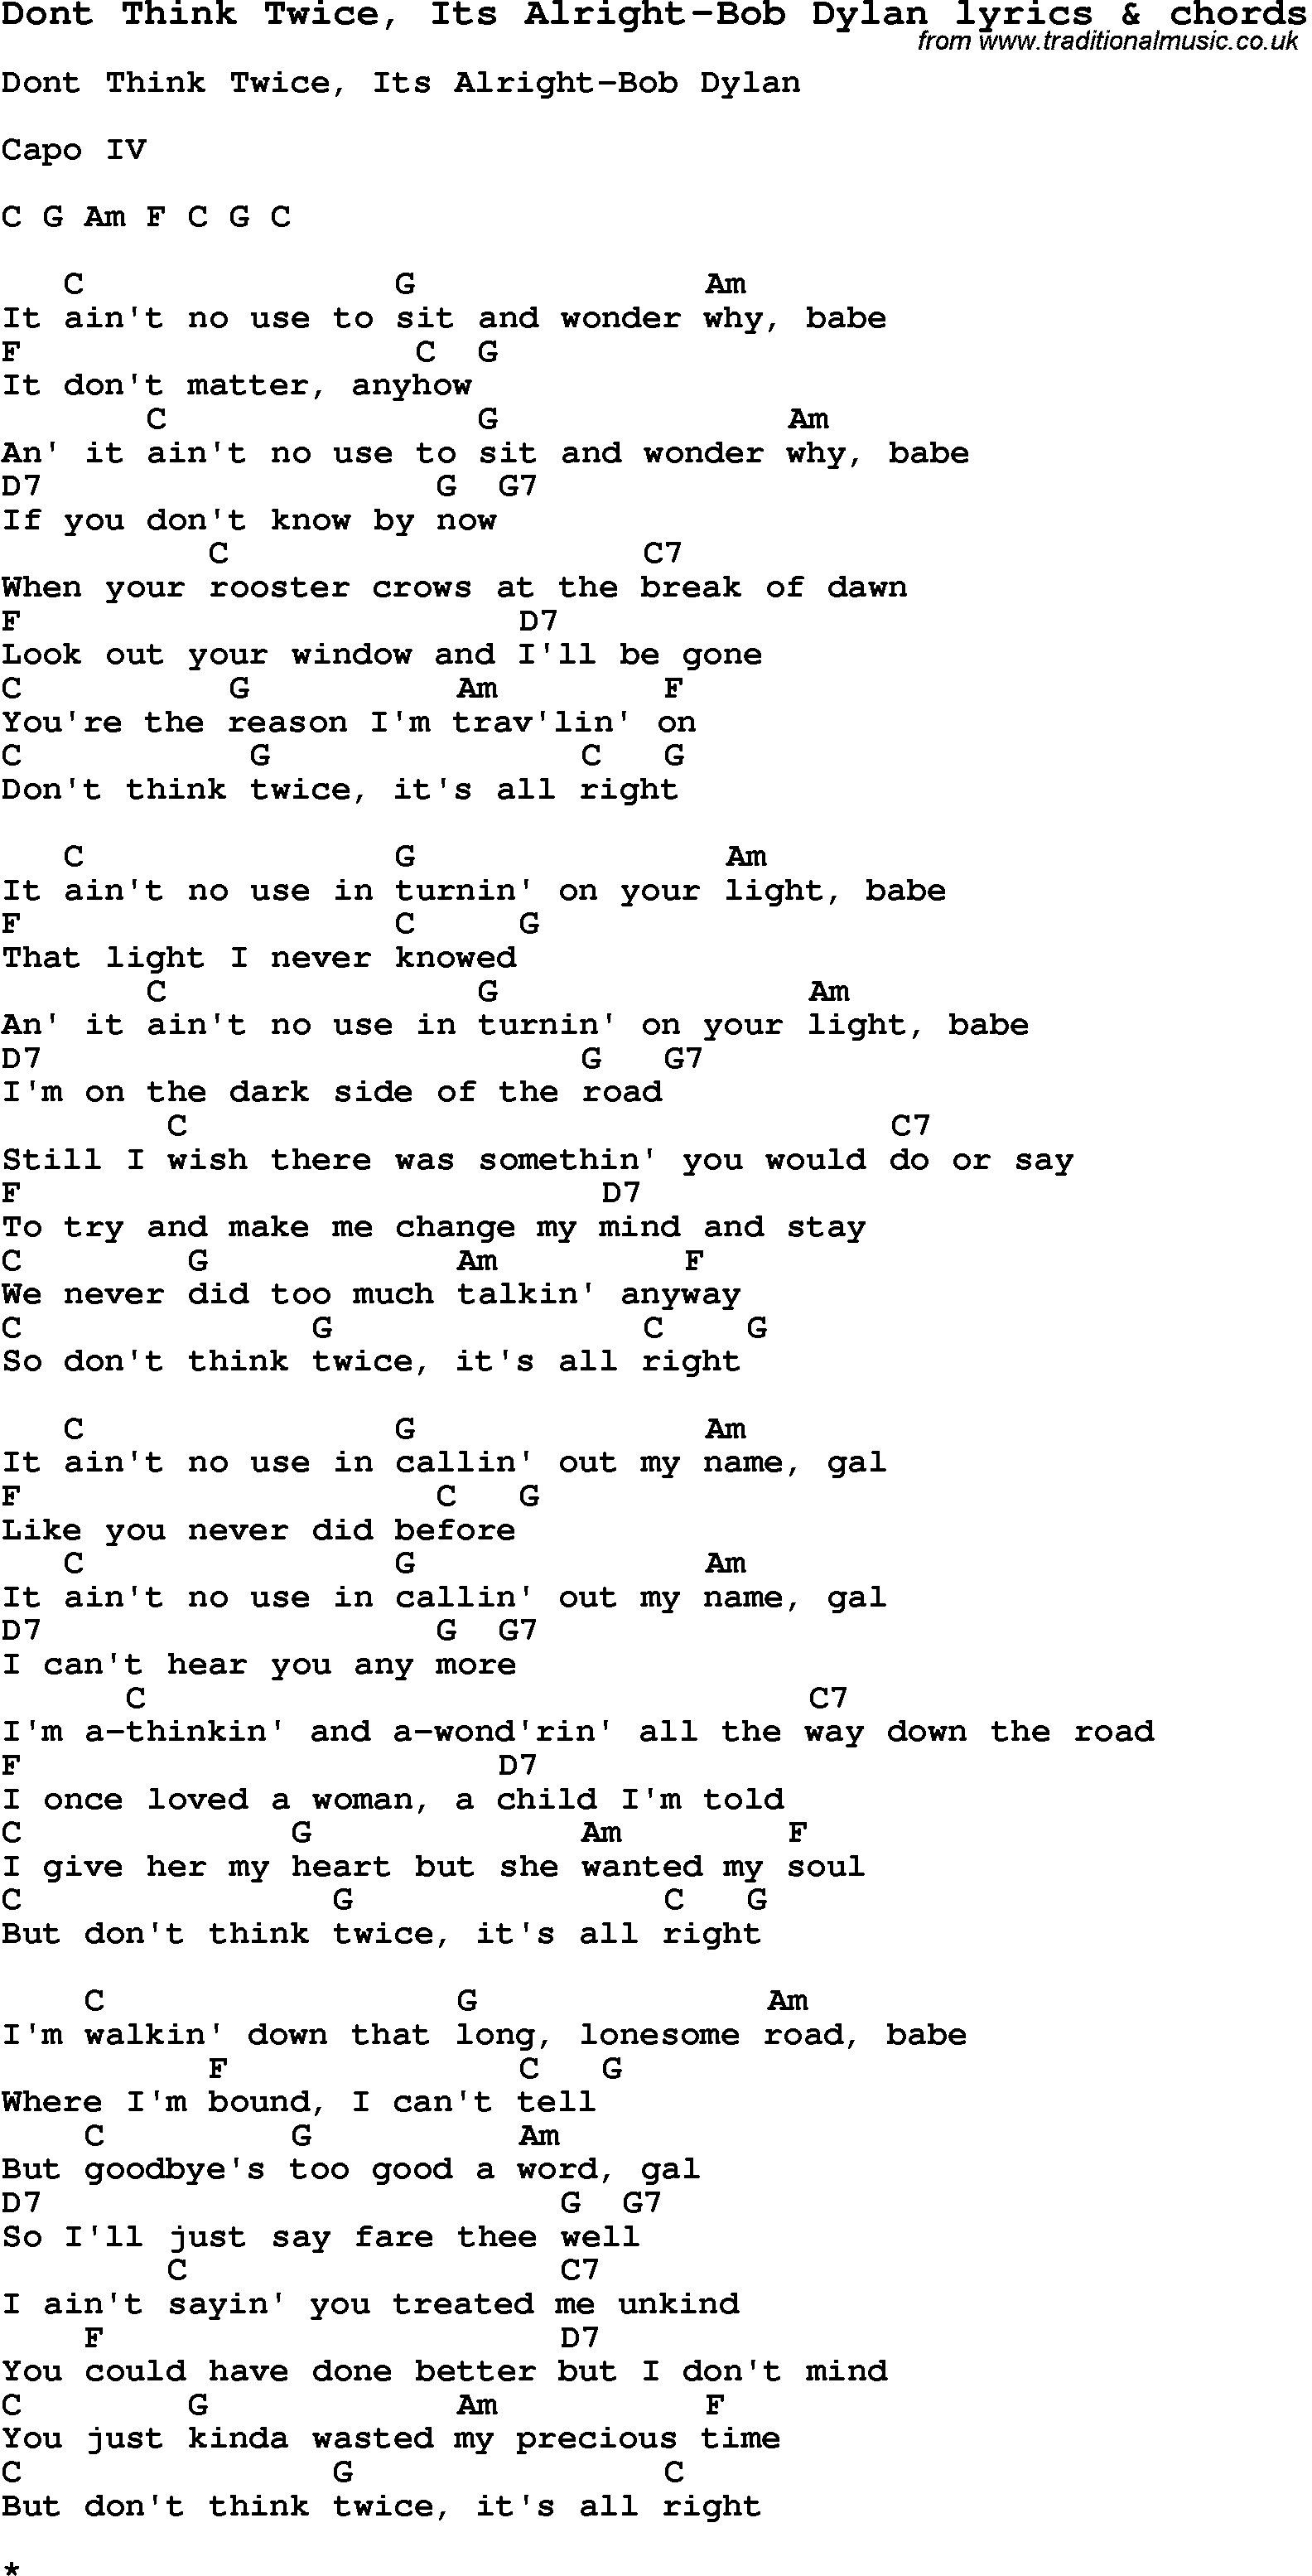 Love Song Lyrics For Dont Think Twice Its Alright Bob Dylan With